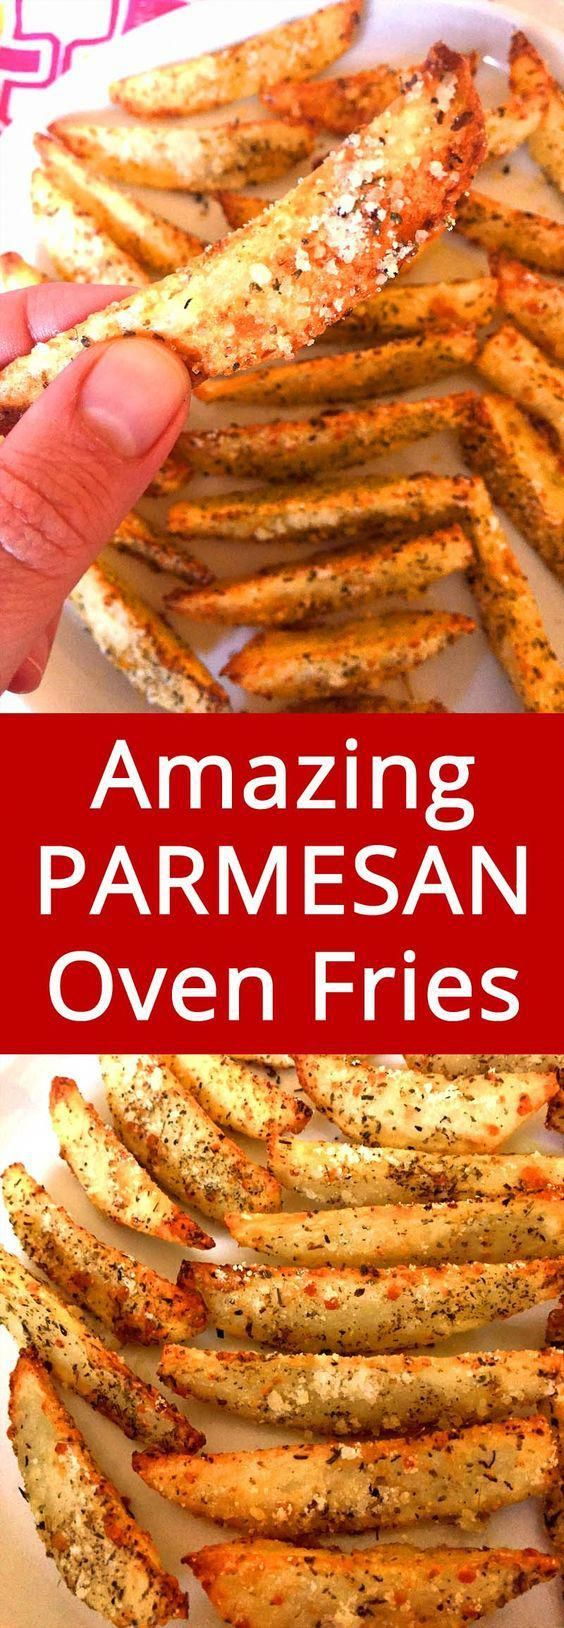 Crispy Baked Garlic Parmesan Potato Fries